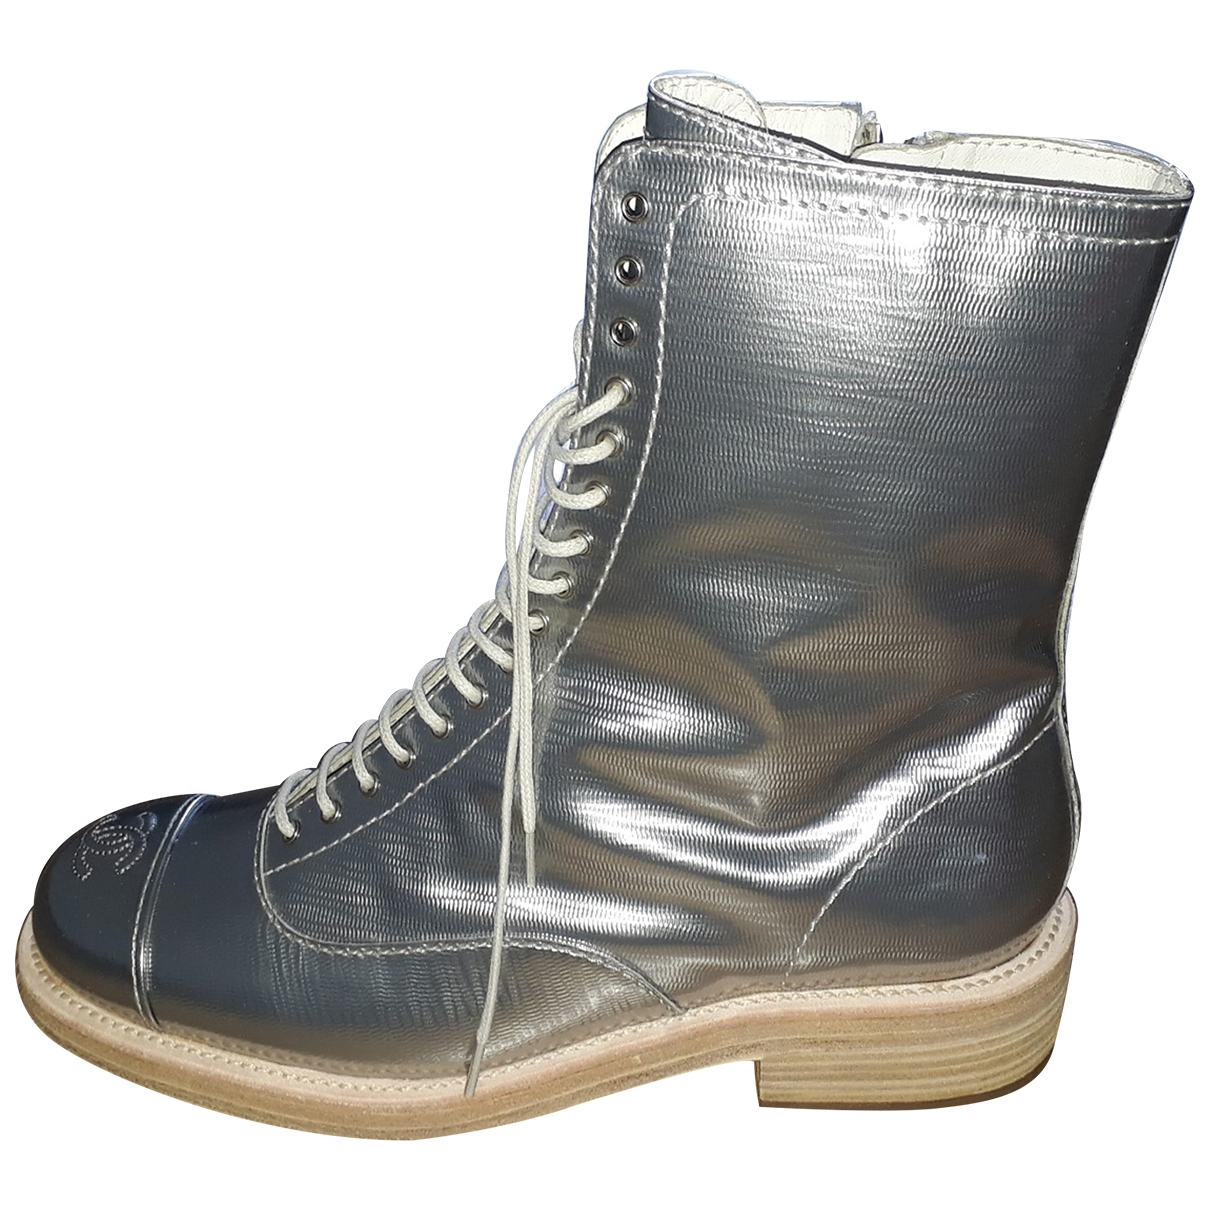 Chanel \N Metallic Leather Ankle boots for Women 39 EU